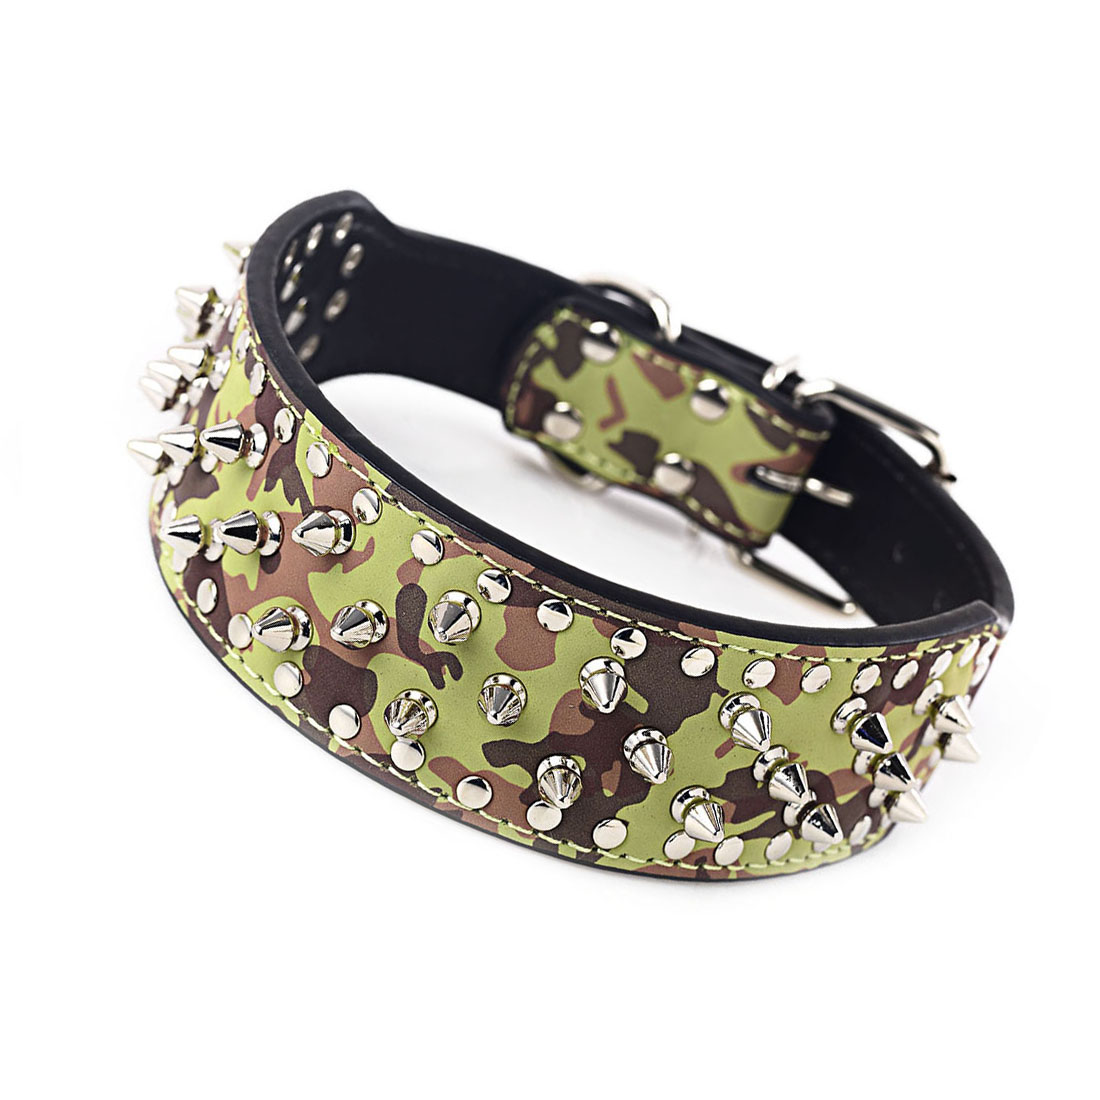 Super sweetheart store Adjustable Pet Collar Pu Leather Spike Punk Warhead Neck Strap Buckle Adjustable Safety Rivet